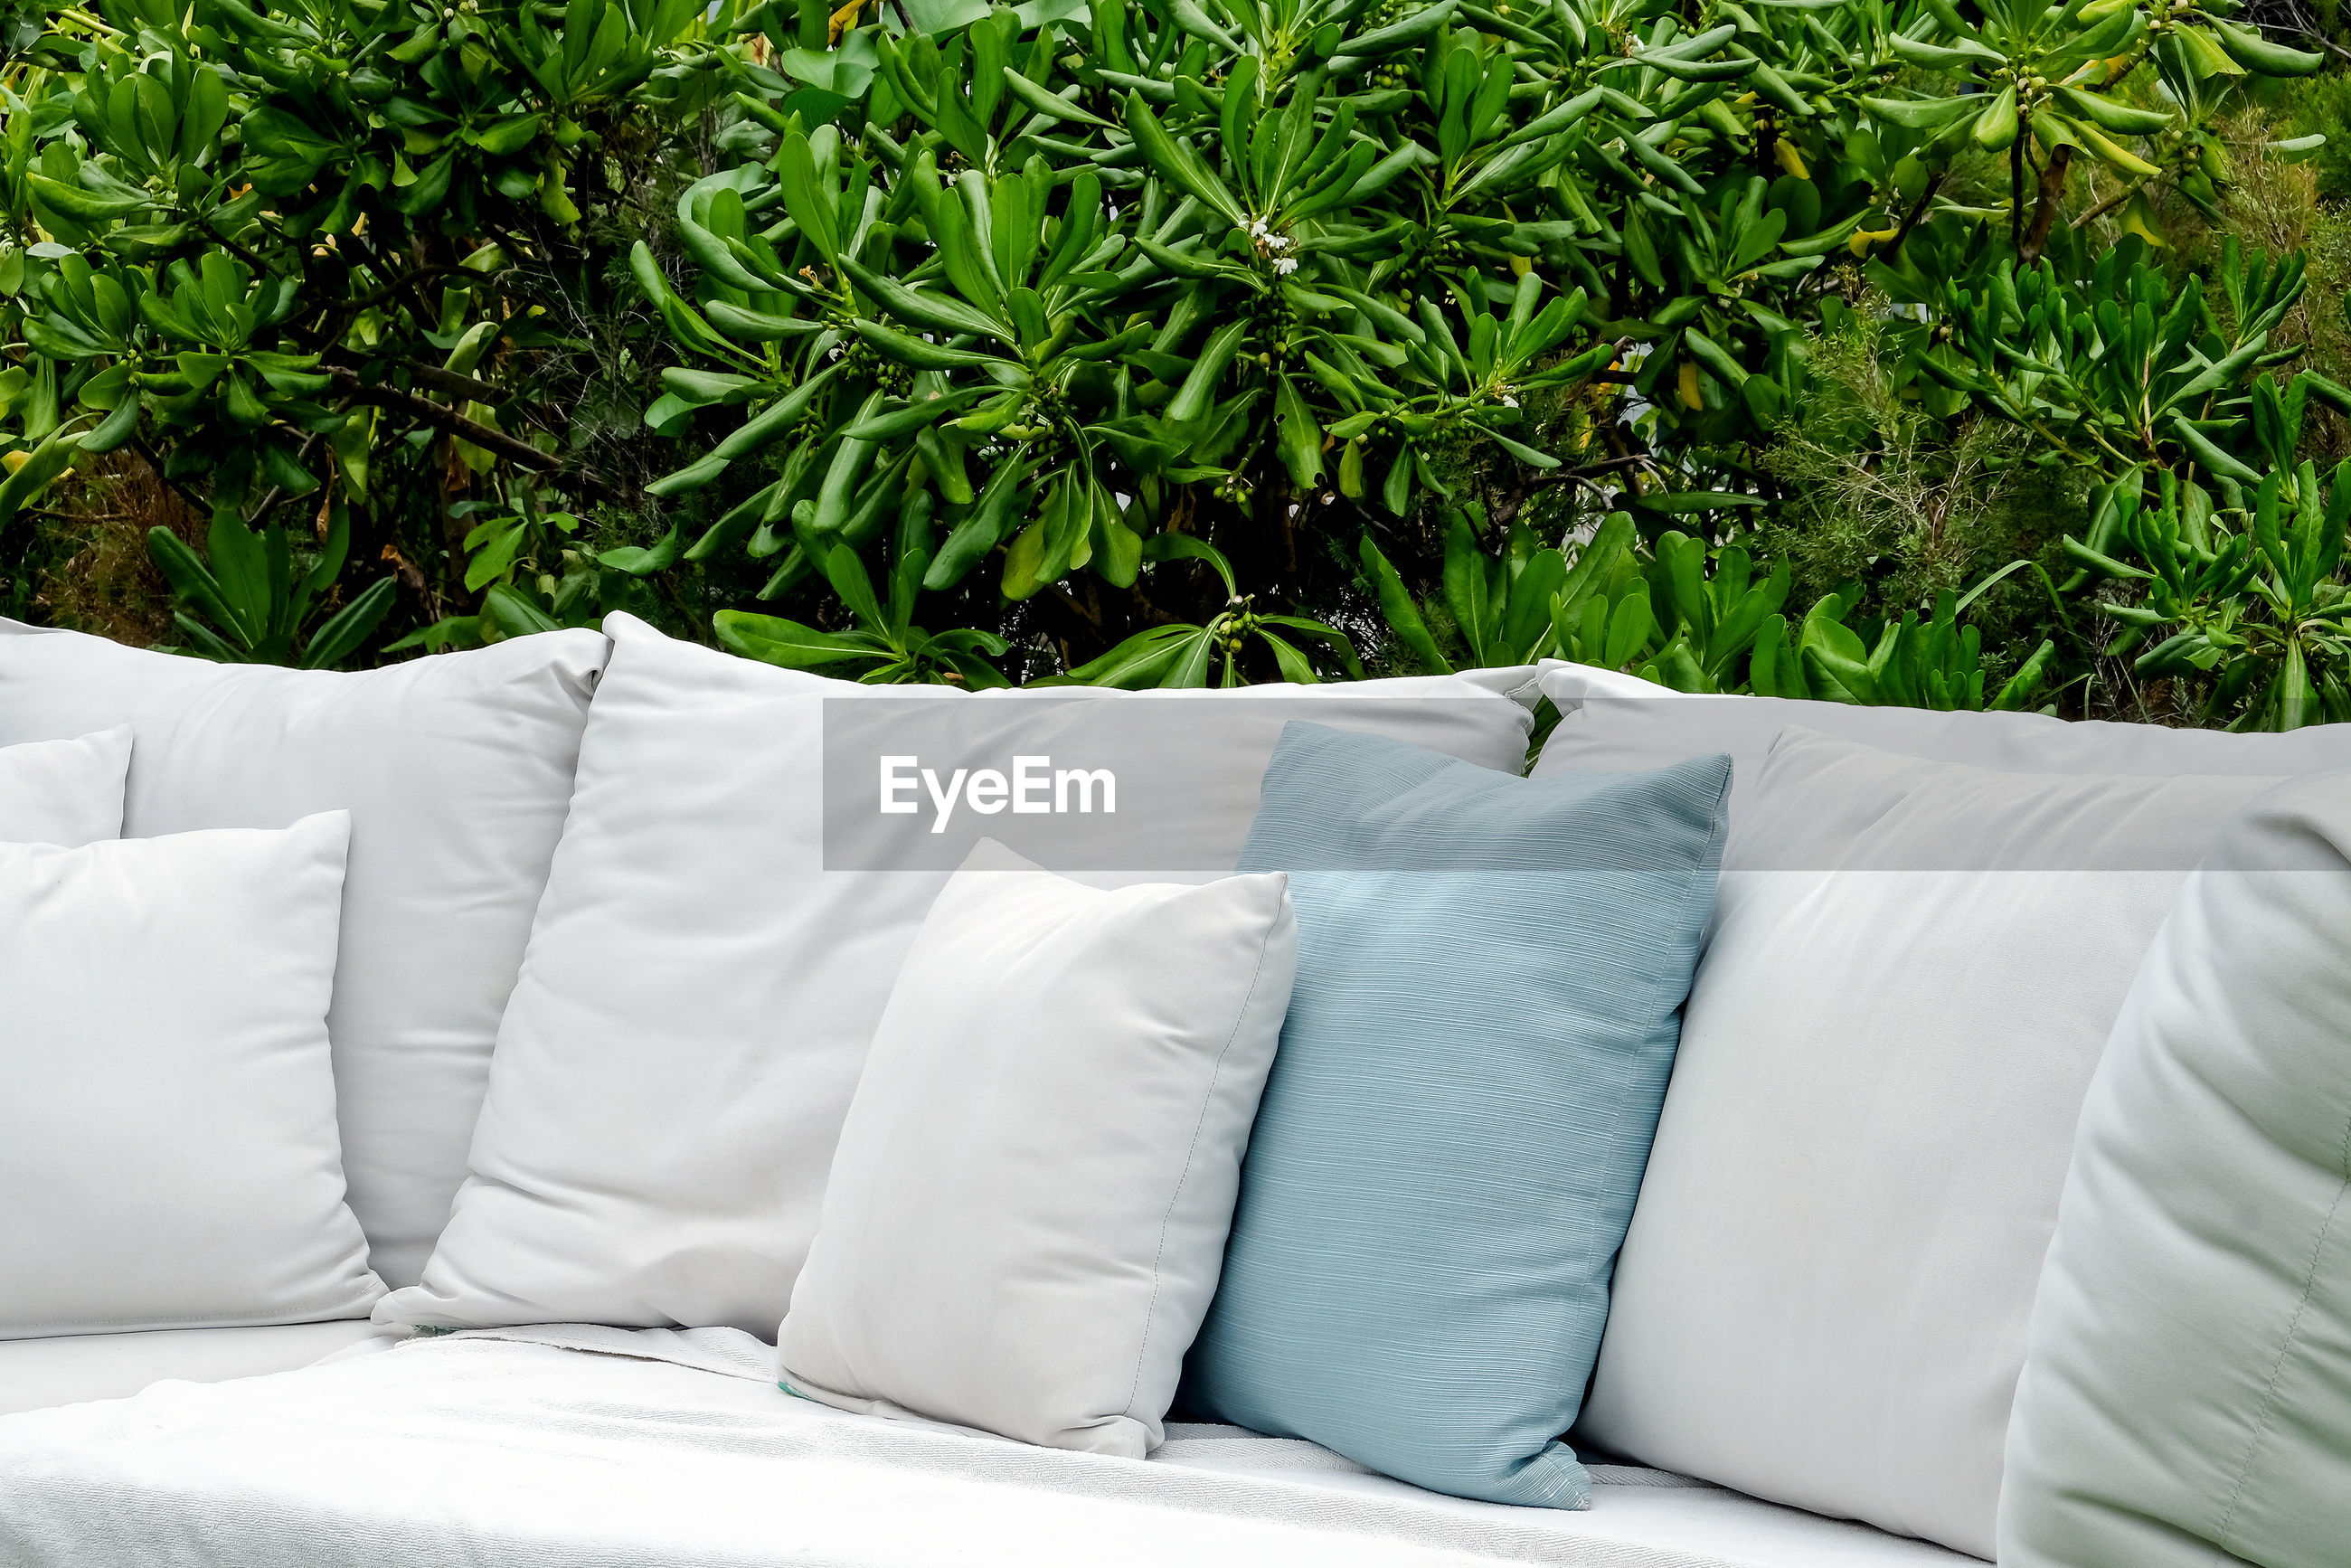 WHITE SOFA ON BED BY PLANTS